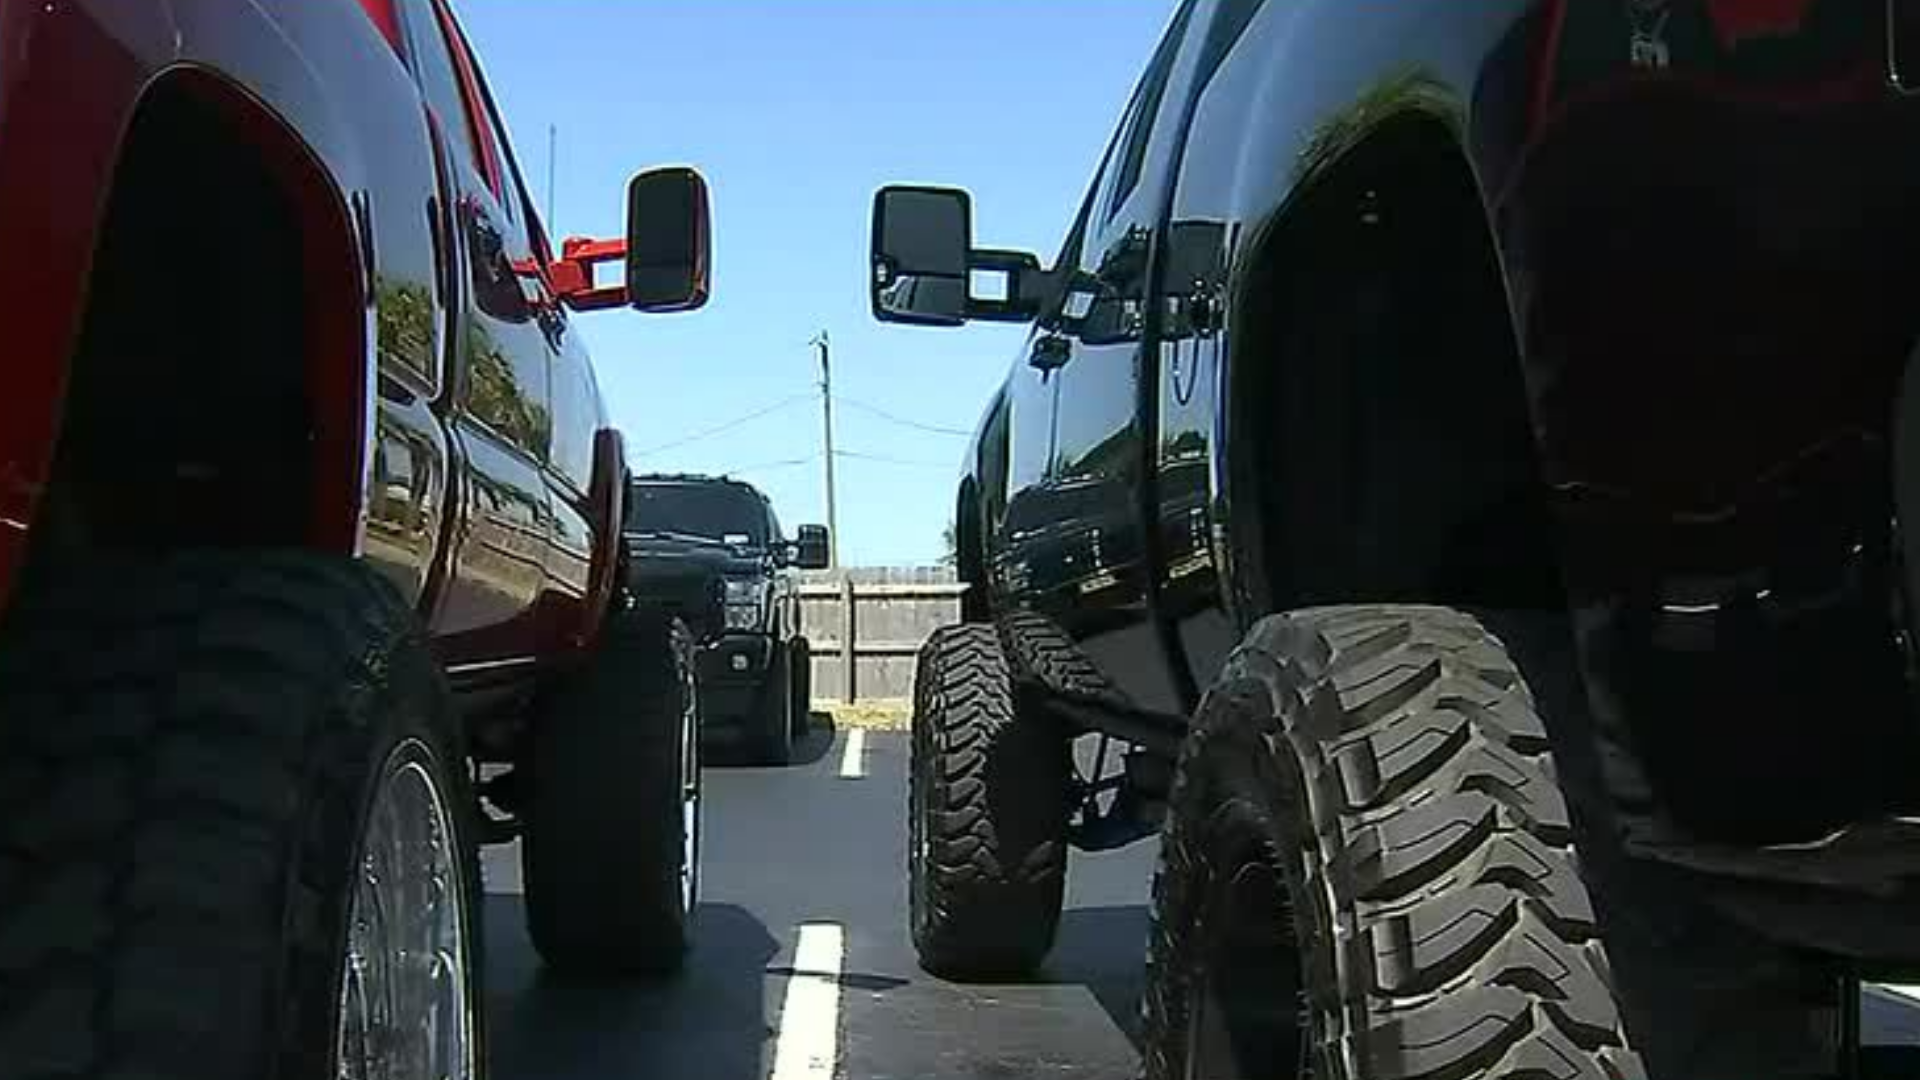 City commission to discuss complaints over Daytona Truck Meet